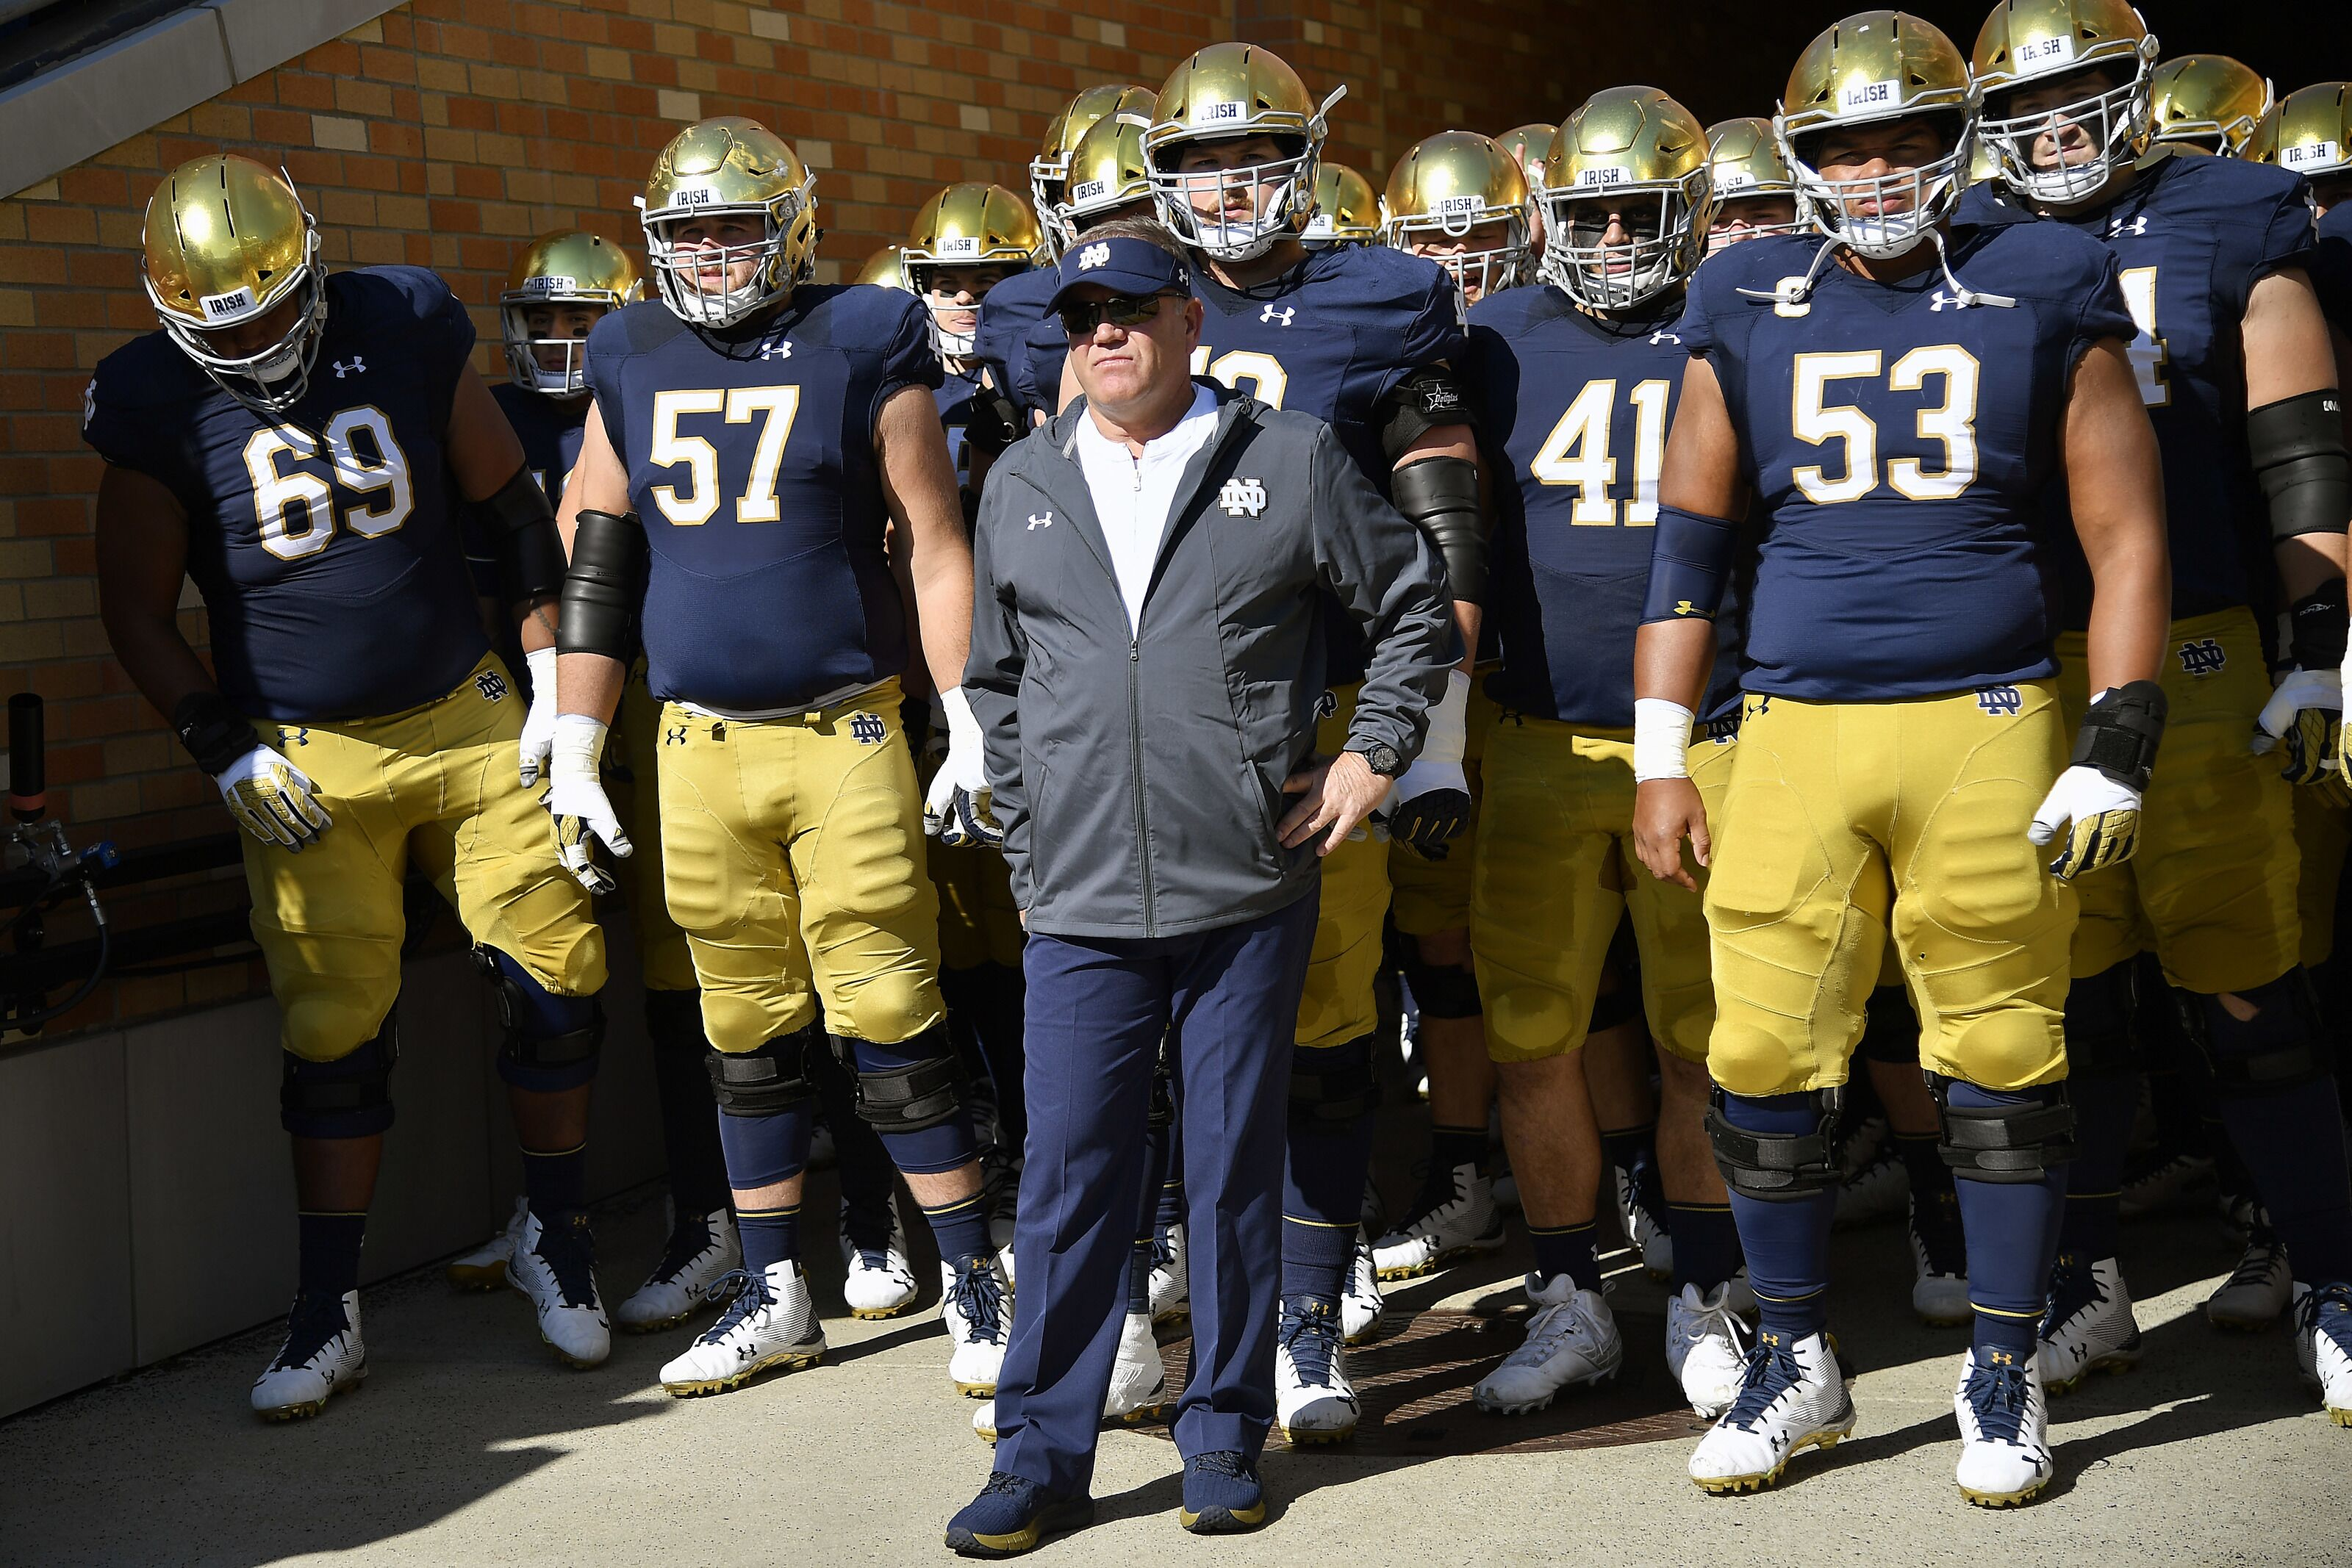 Notre Dame Football: 3 biggest surprises from 2019 season